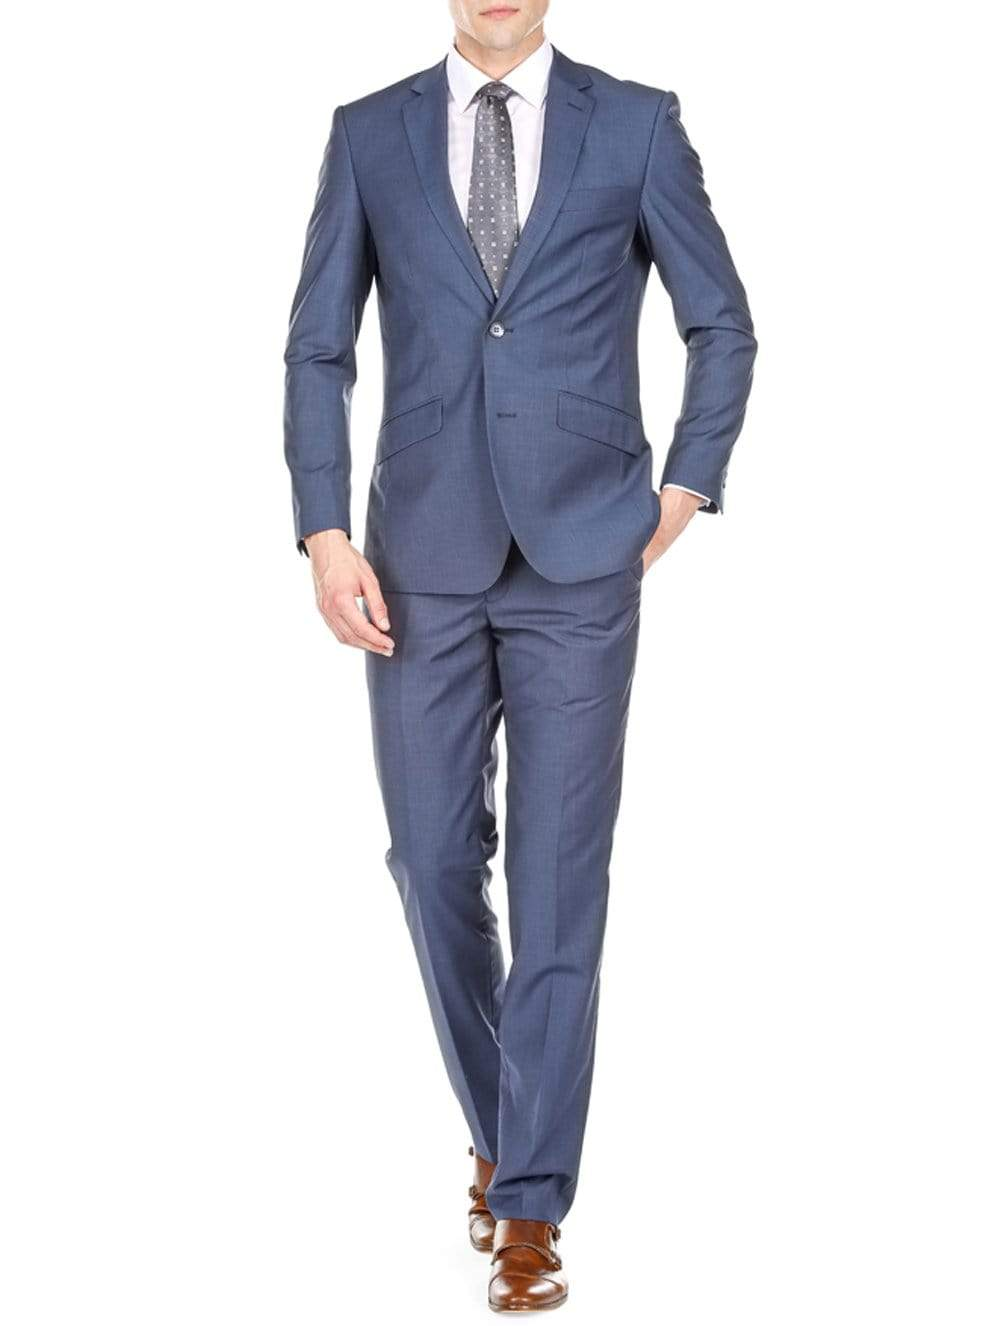 DAILY HAUTE Men's Suits BLUE / 36Rx30W Gino Vitale Men's Slim Fit Sharkskin 2 Piece Suit